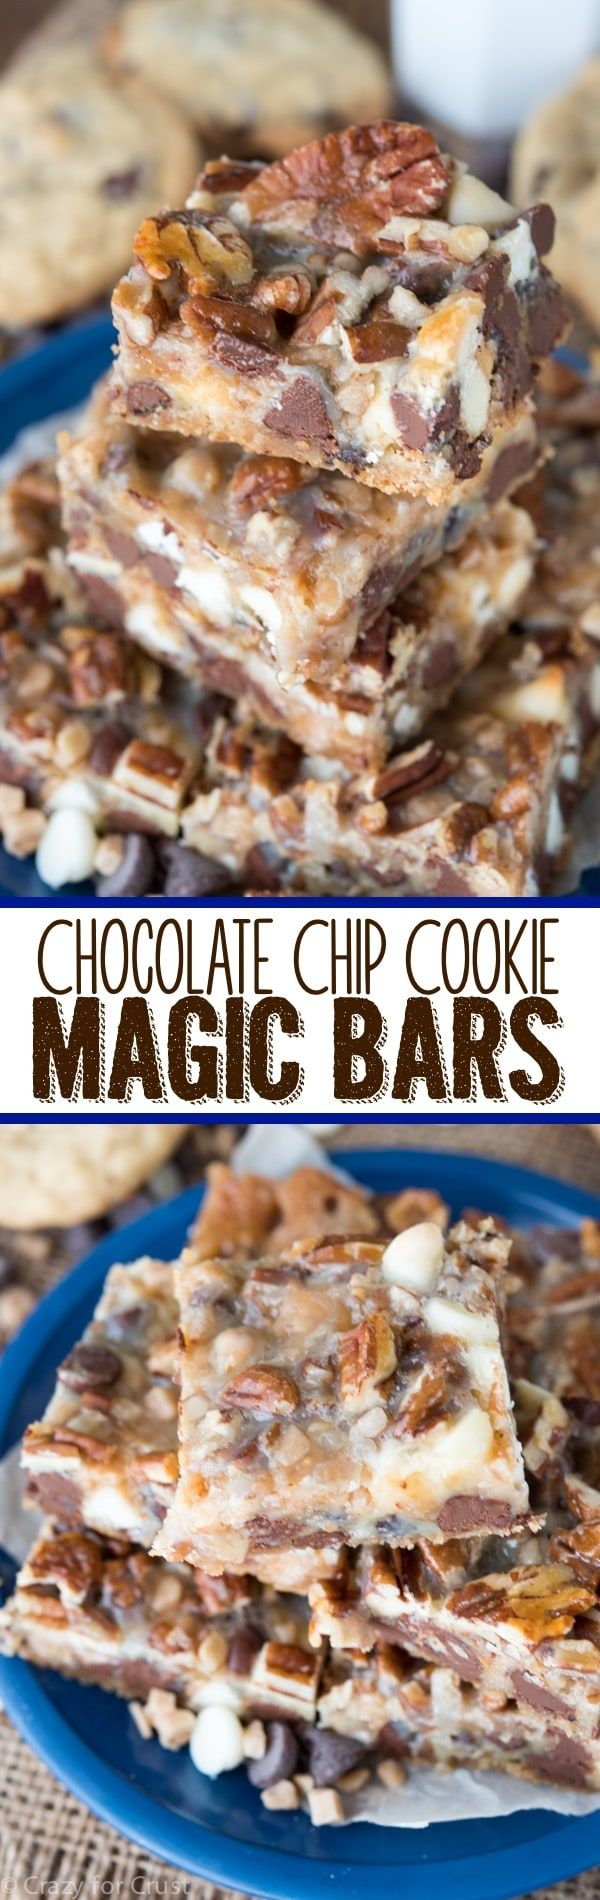 This EASY Chocolate Chip Cookie Magic Bars recipe comes together in just minutes!